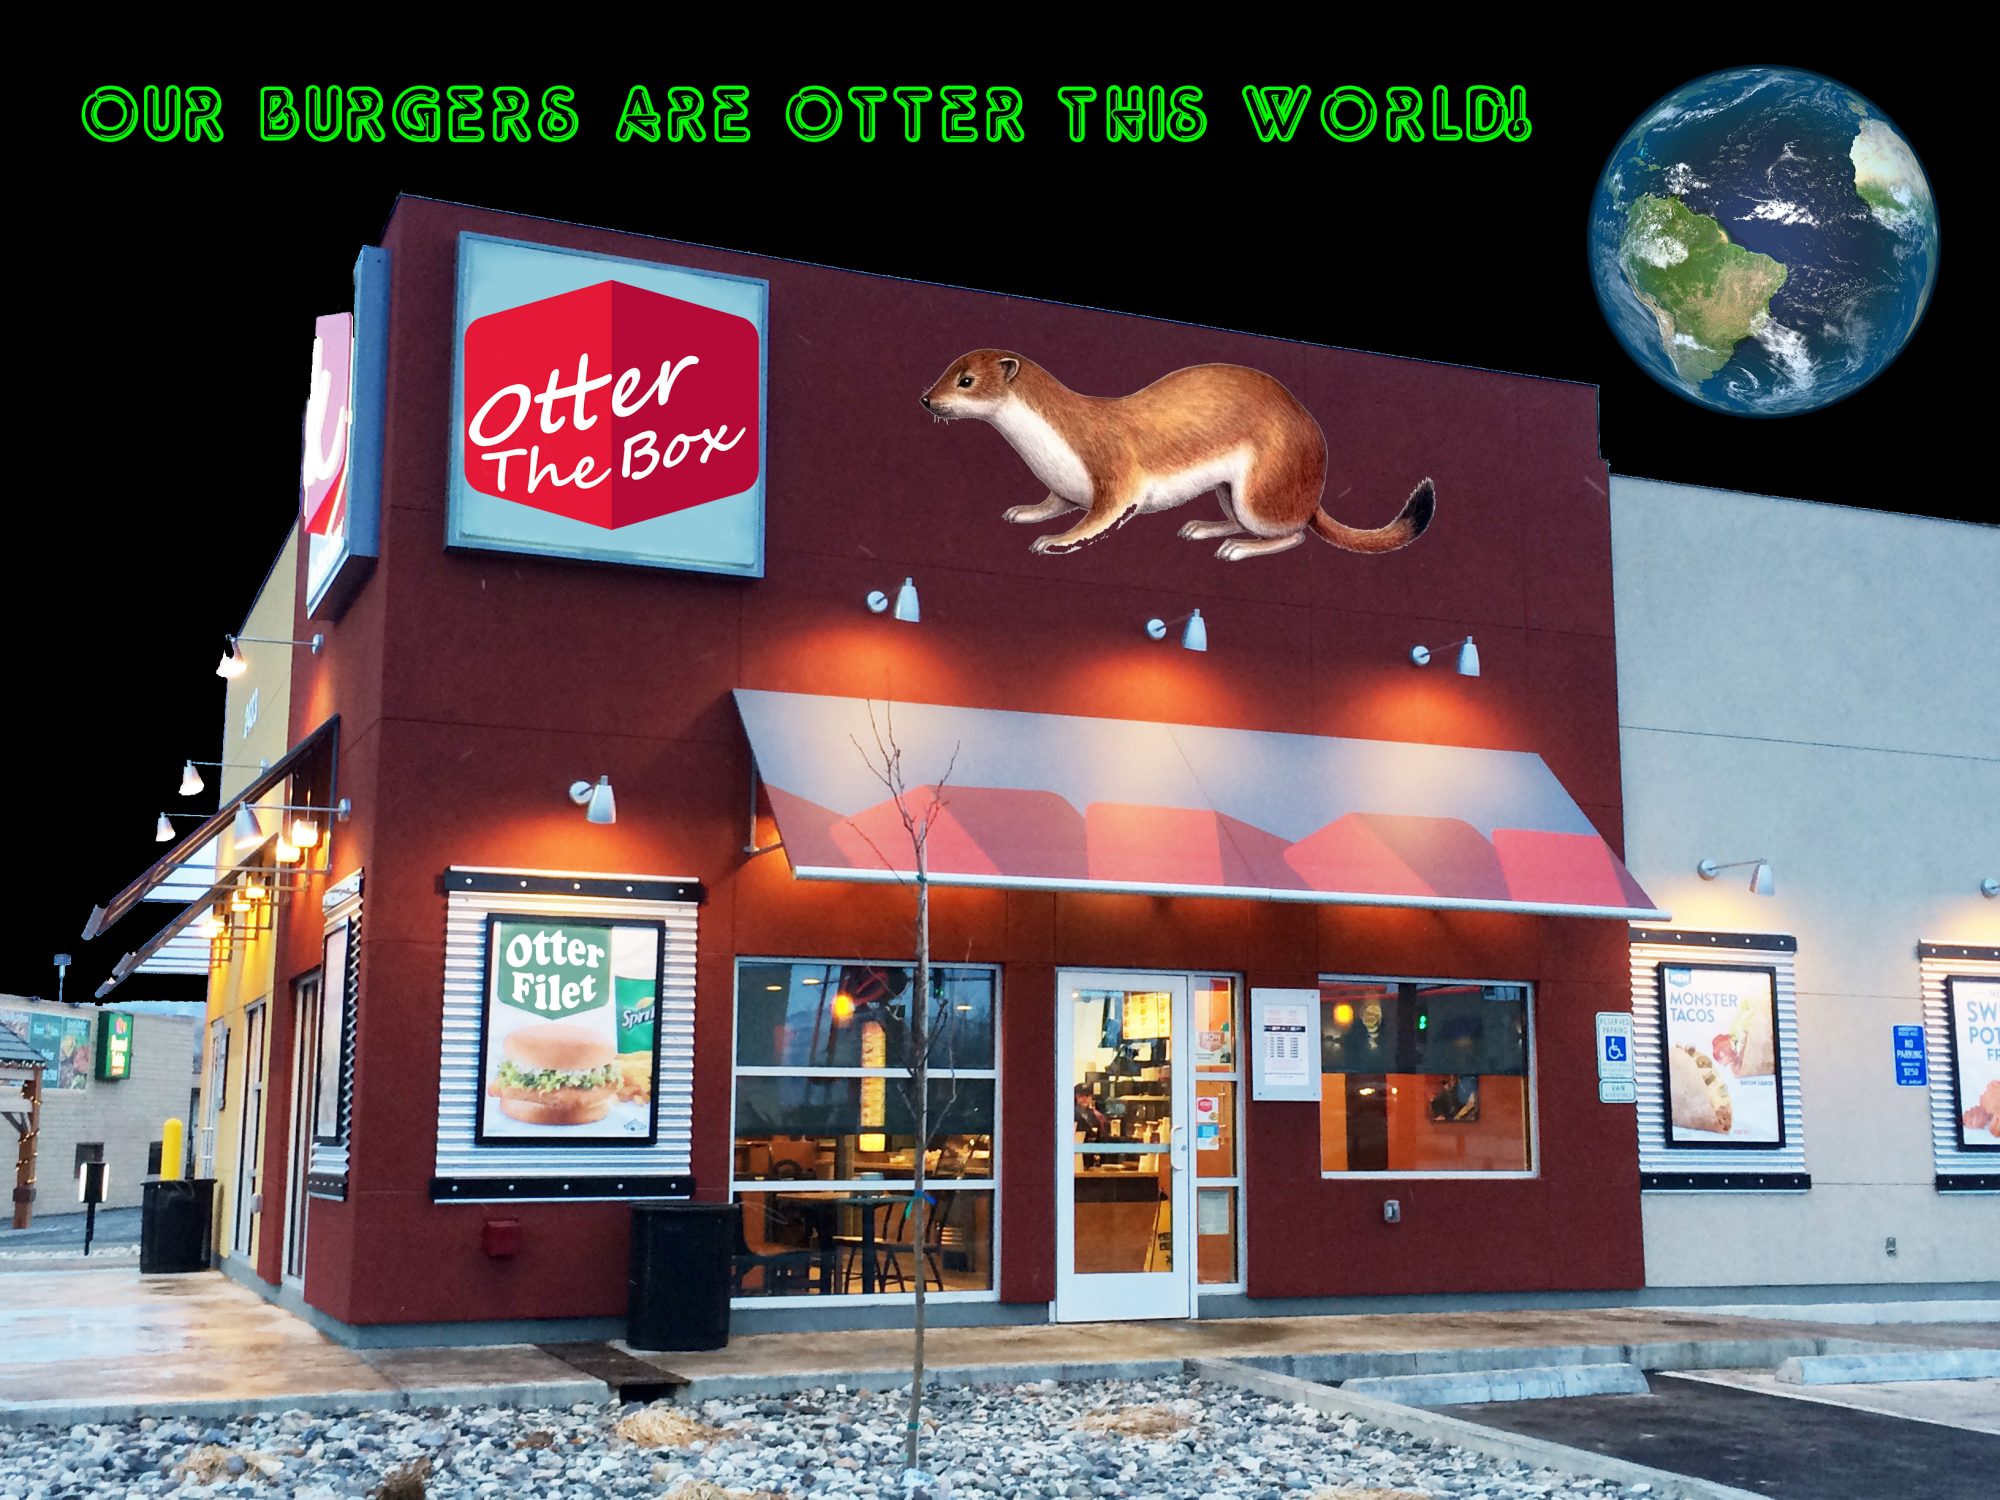 Our burgers are otter this world!